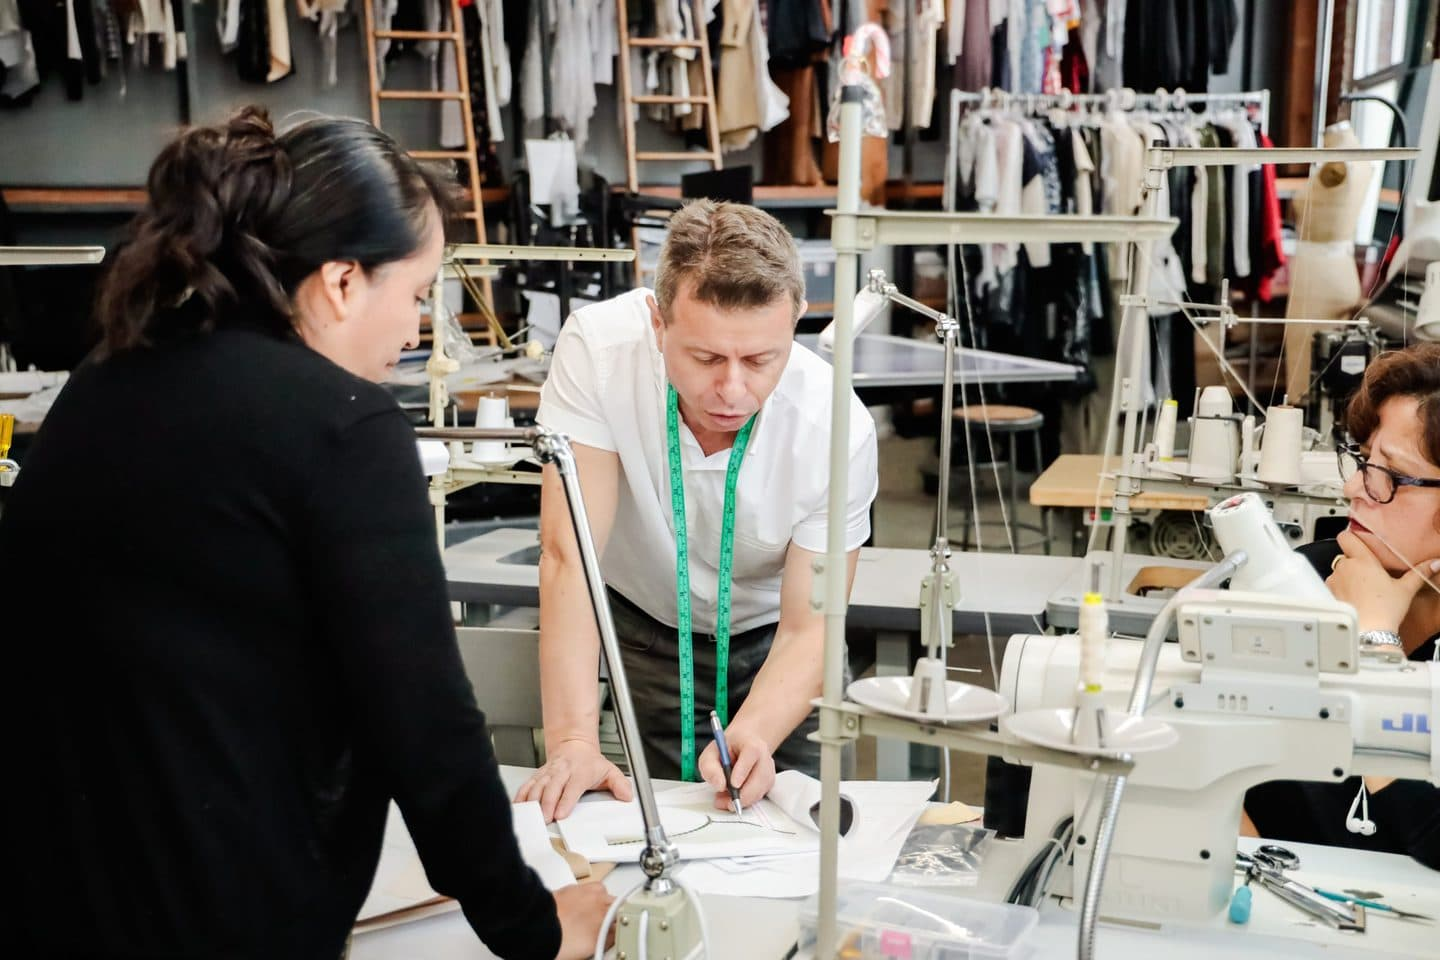 Two Los Angeles pattern makers going over a design in a clothing manufacturing studio